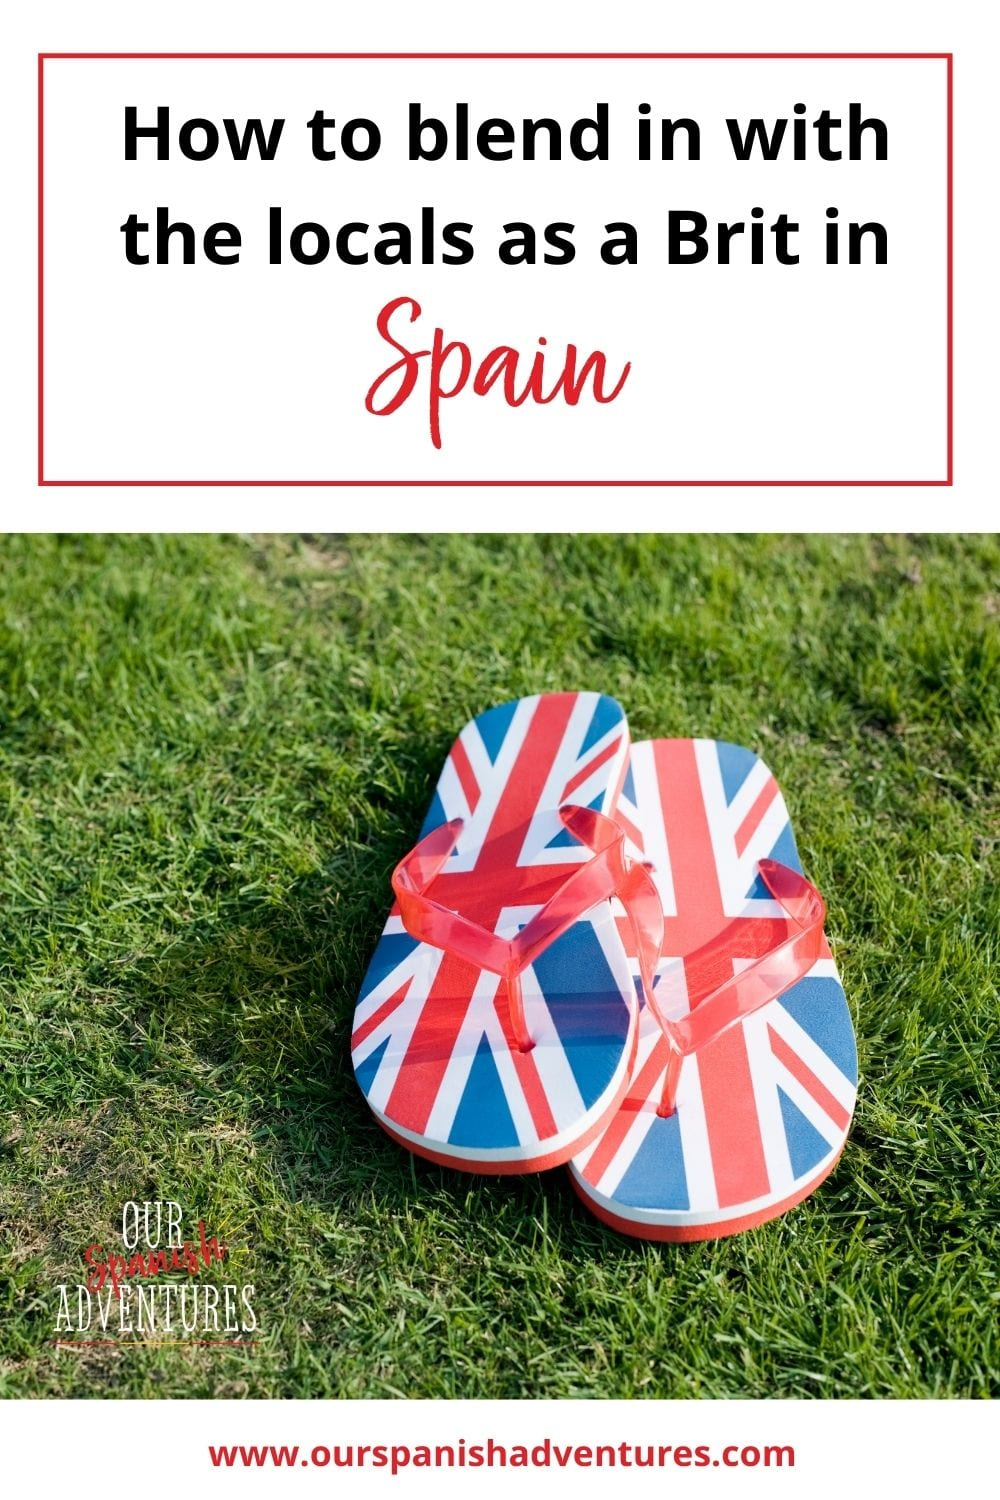 How to blend in with the locals as a Brit in Spain   Our Spanish Adventures